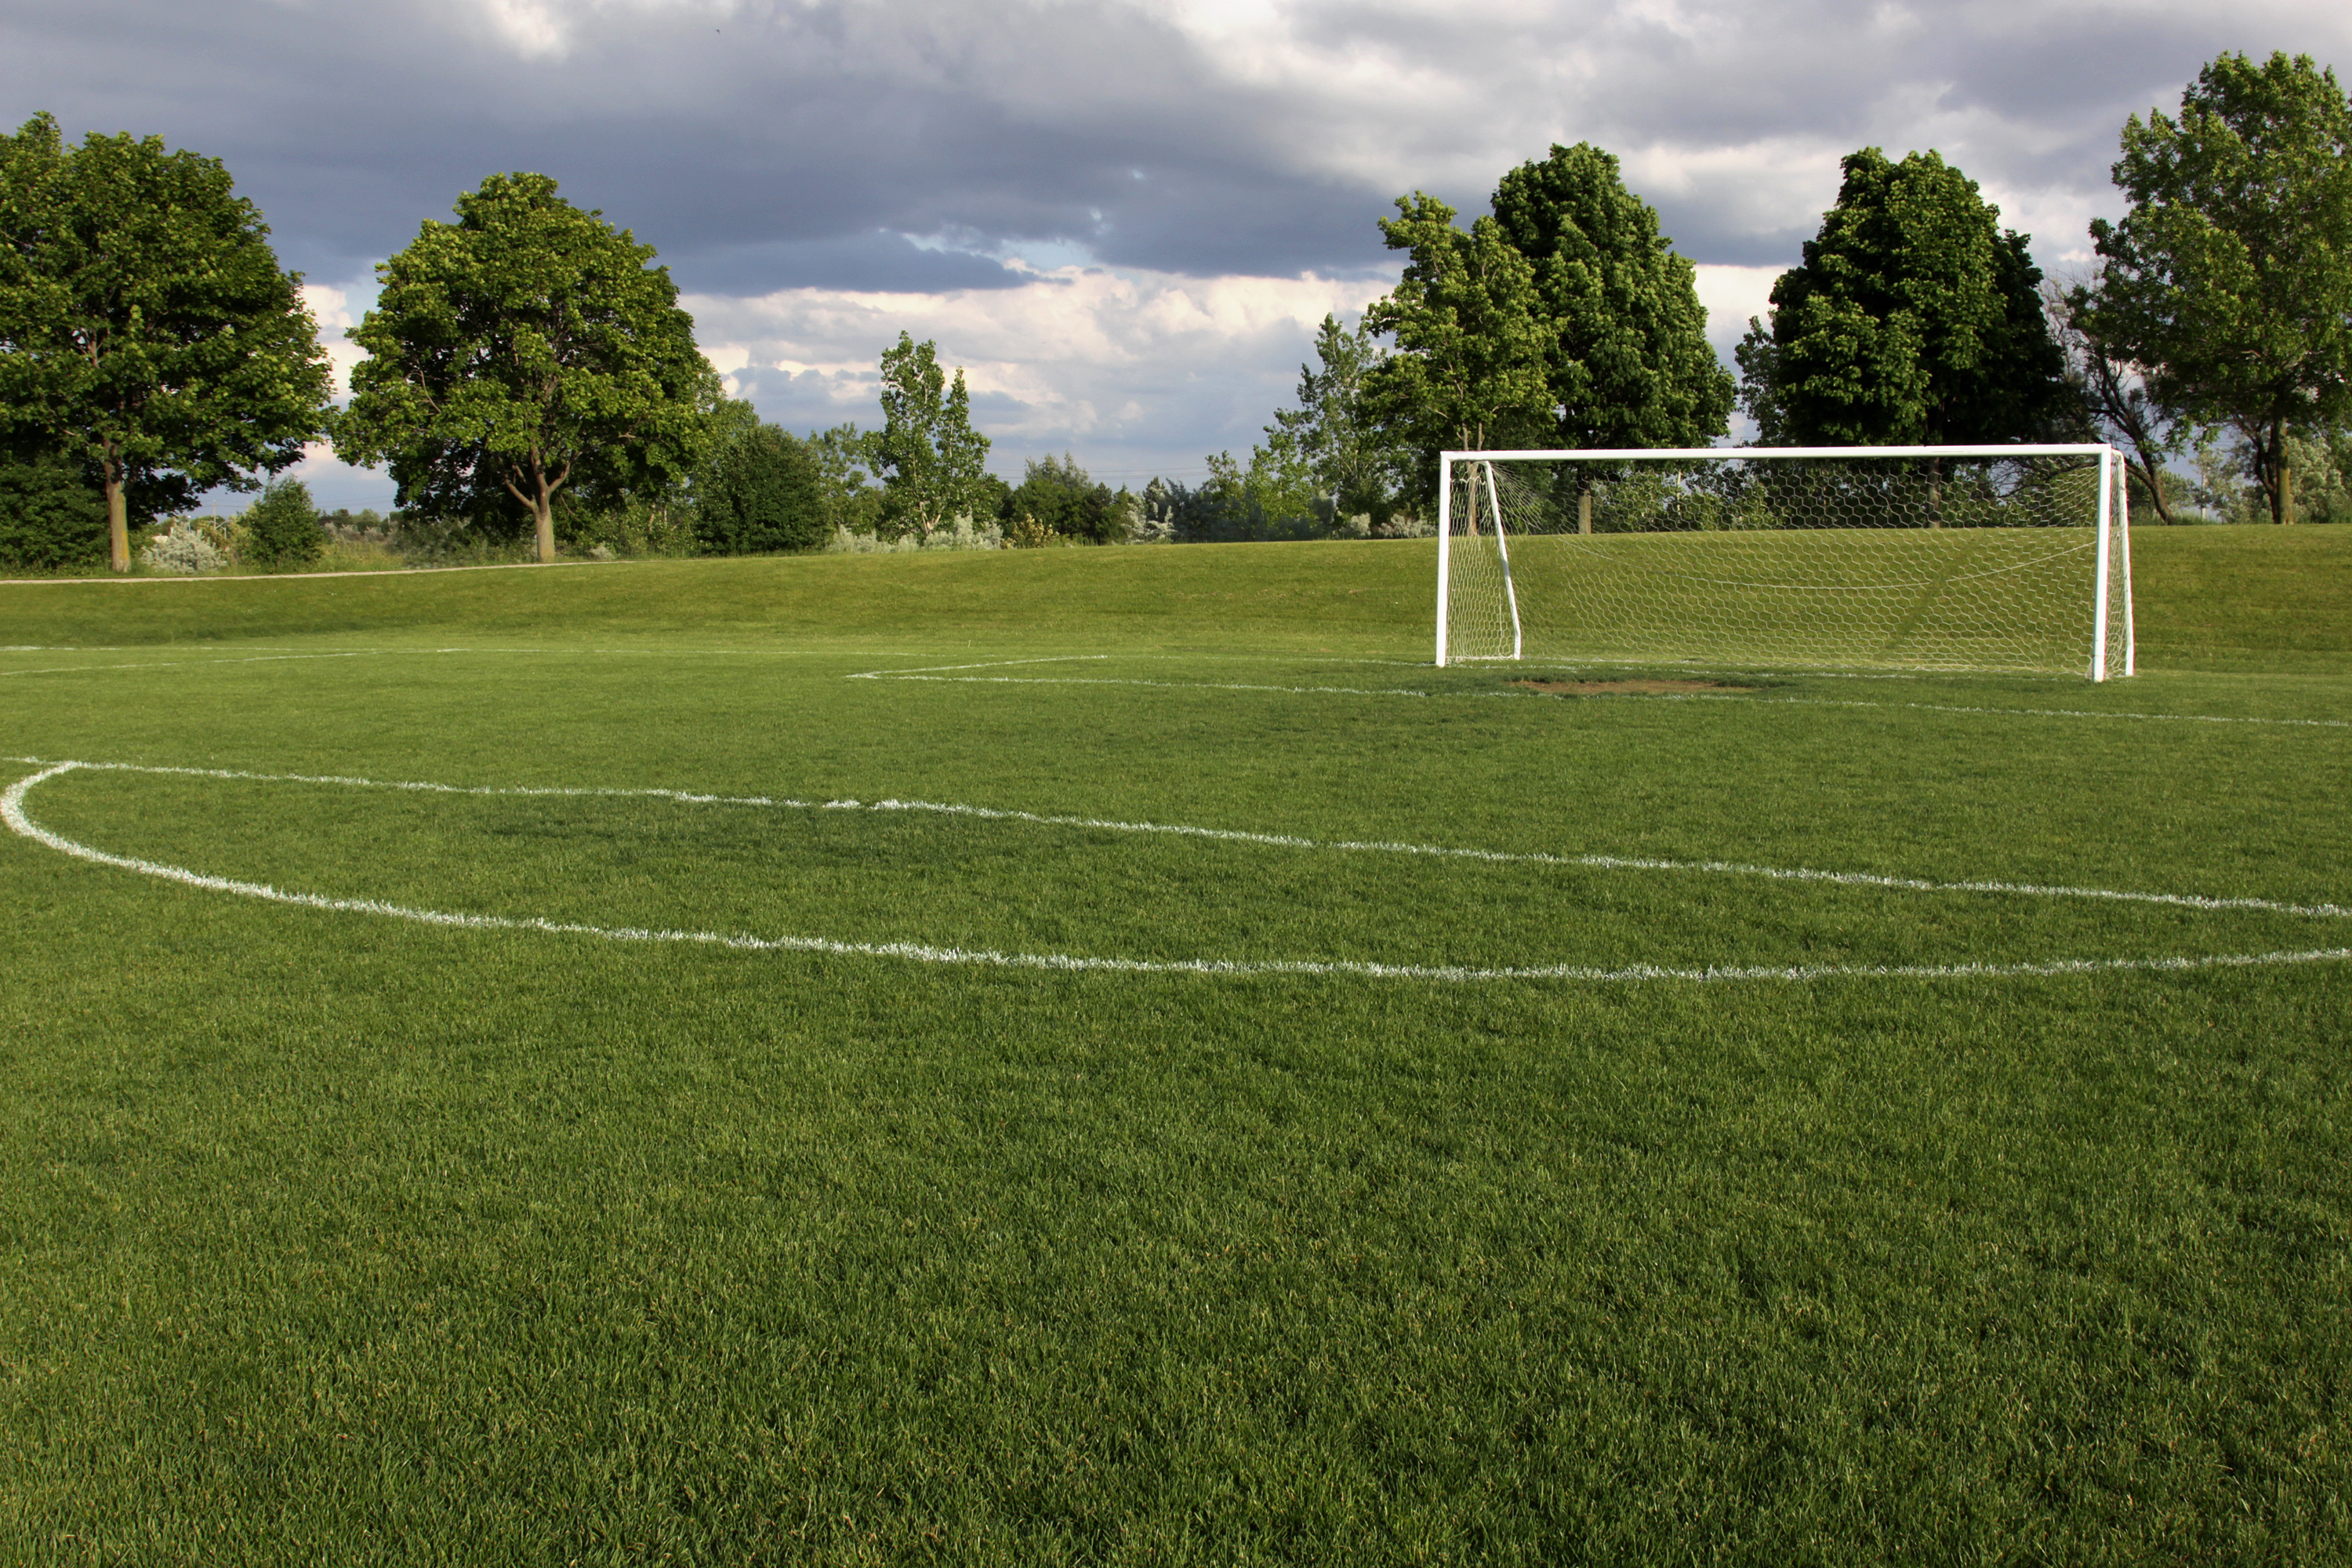 Police say an argument between two parents at a youth soccer tournament in Salt Lake City resulted in one parent displaying a rifle.